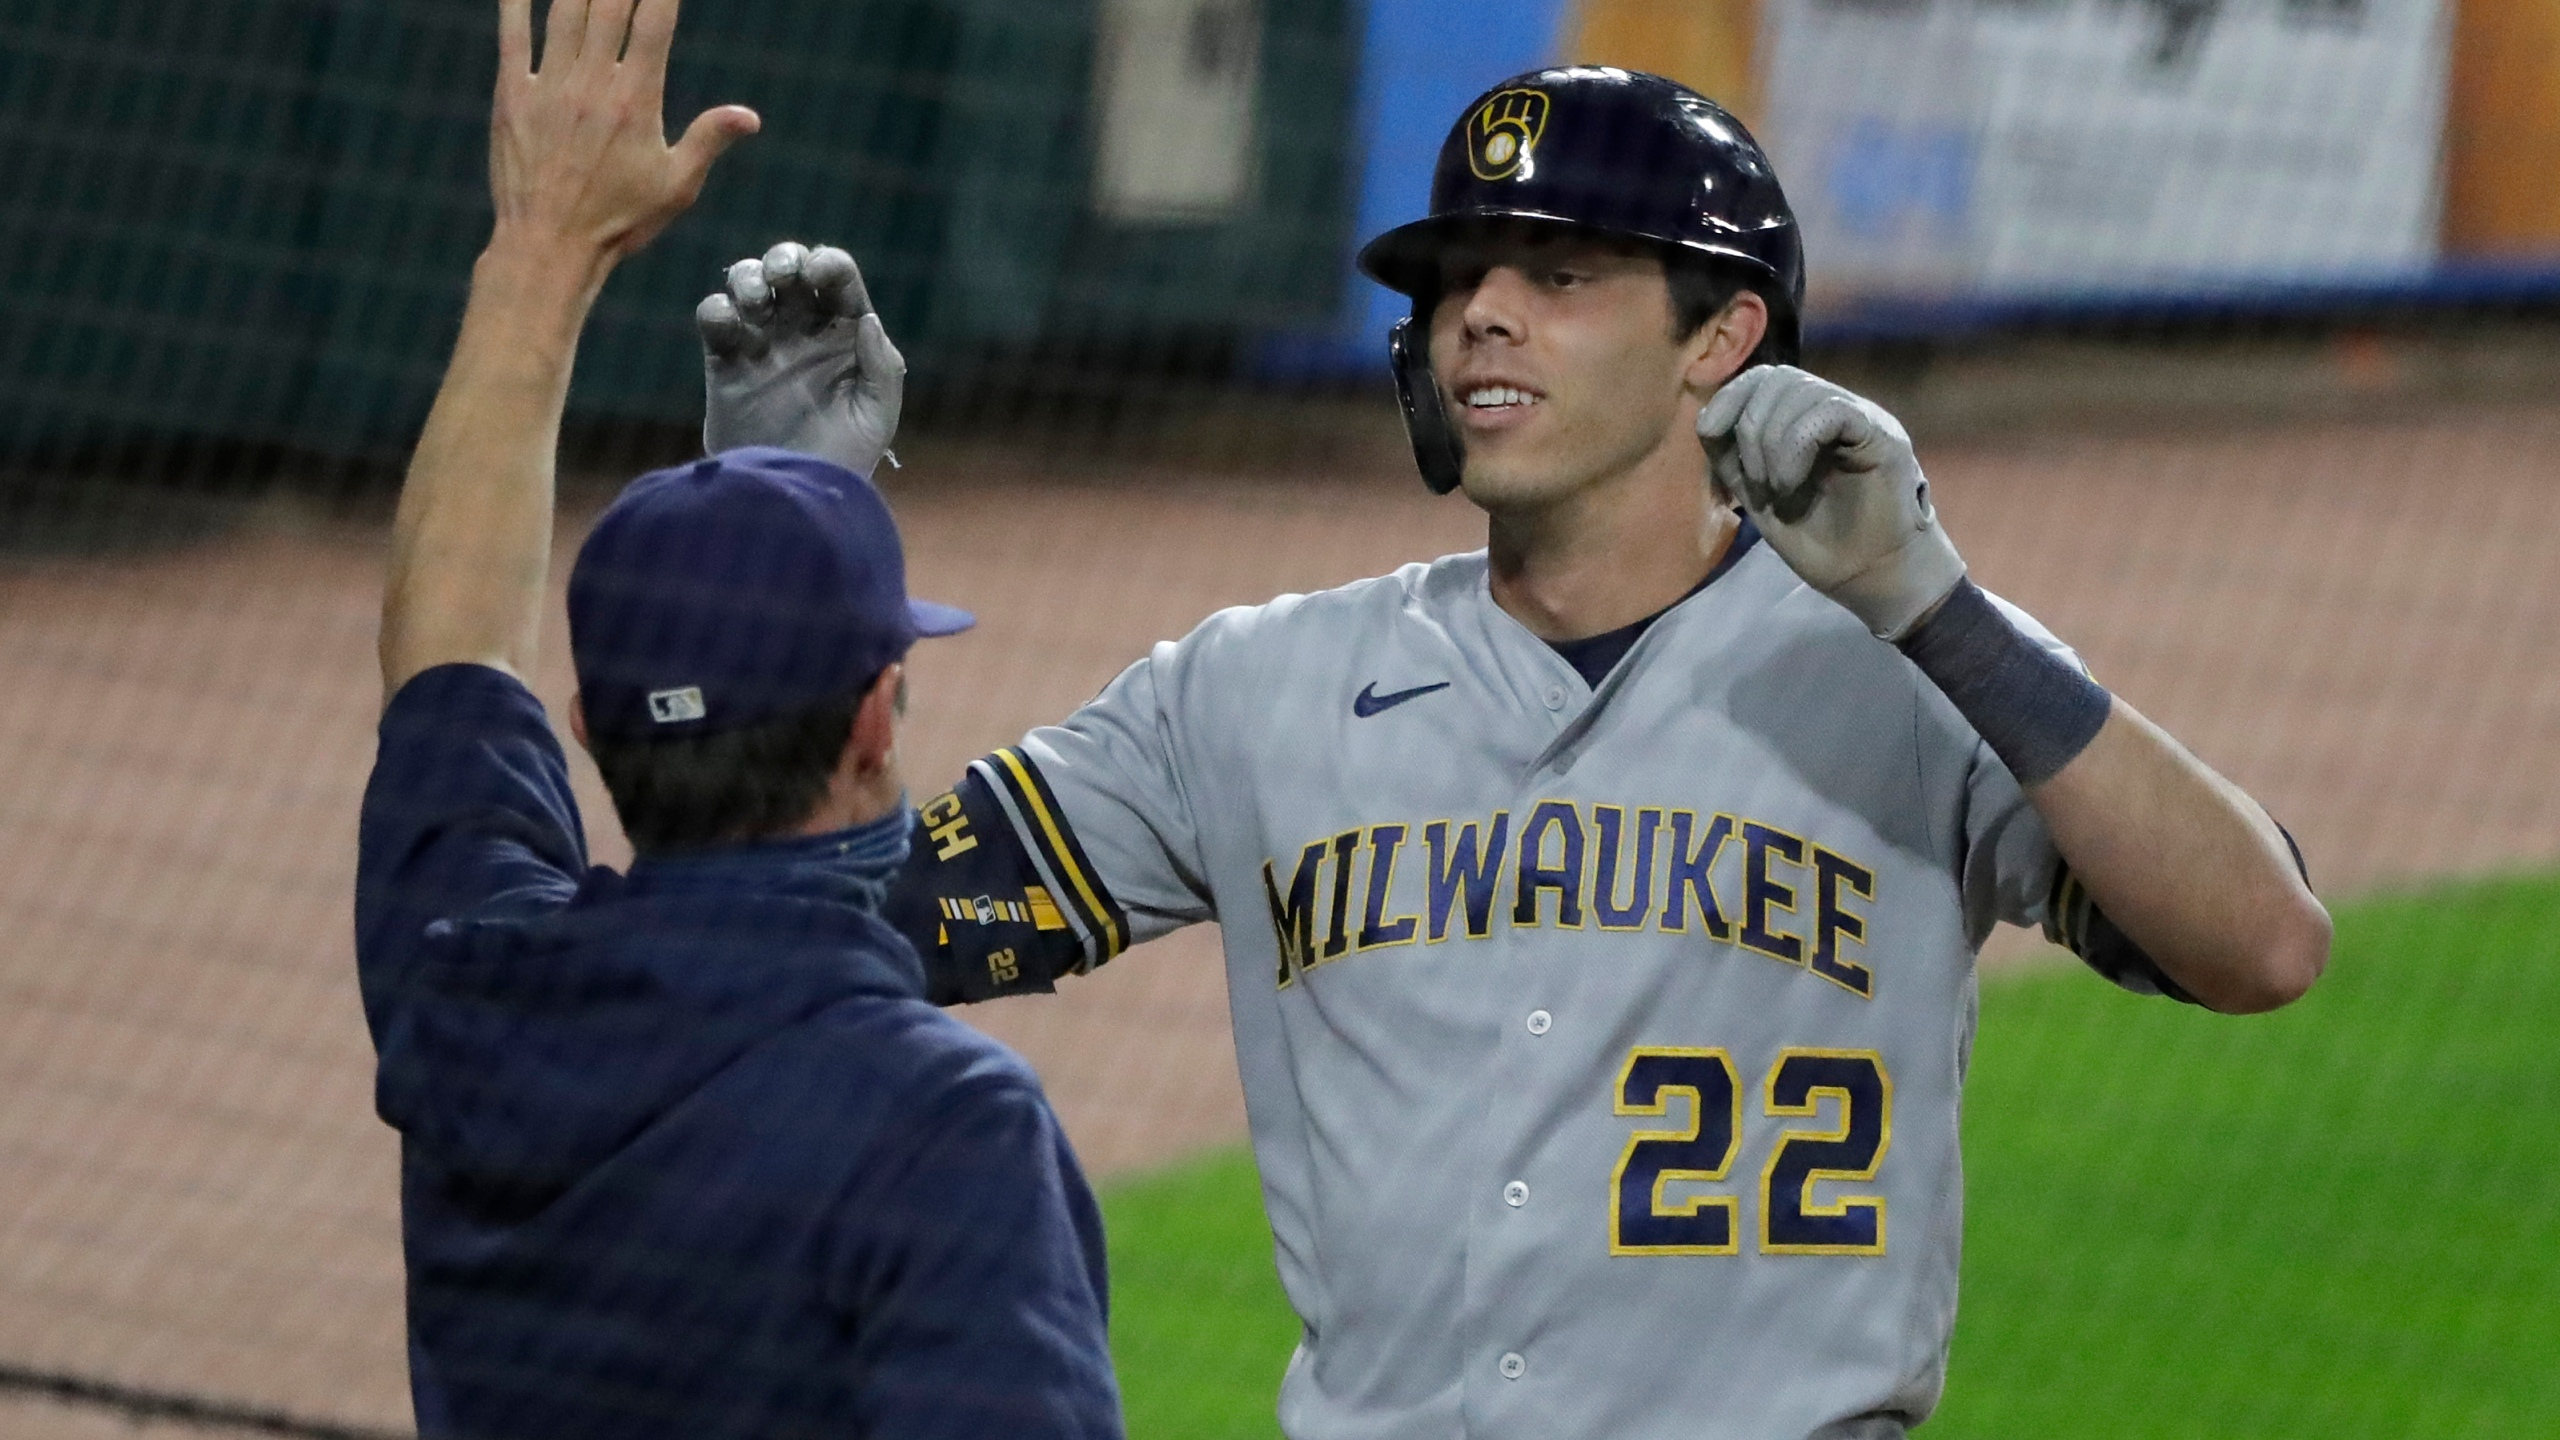 Christian Yelich, Craig Counsell